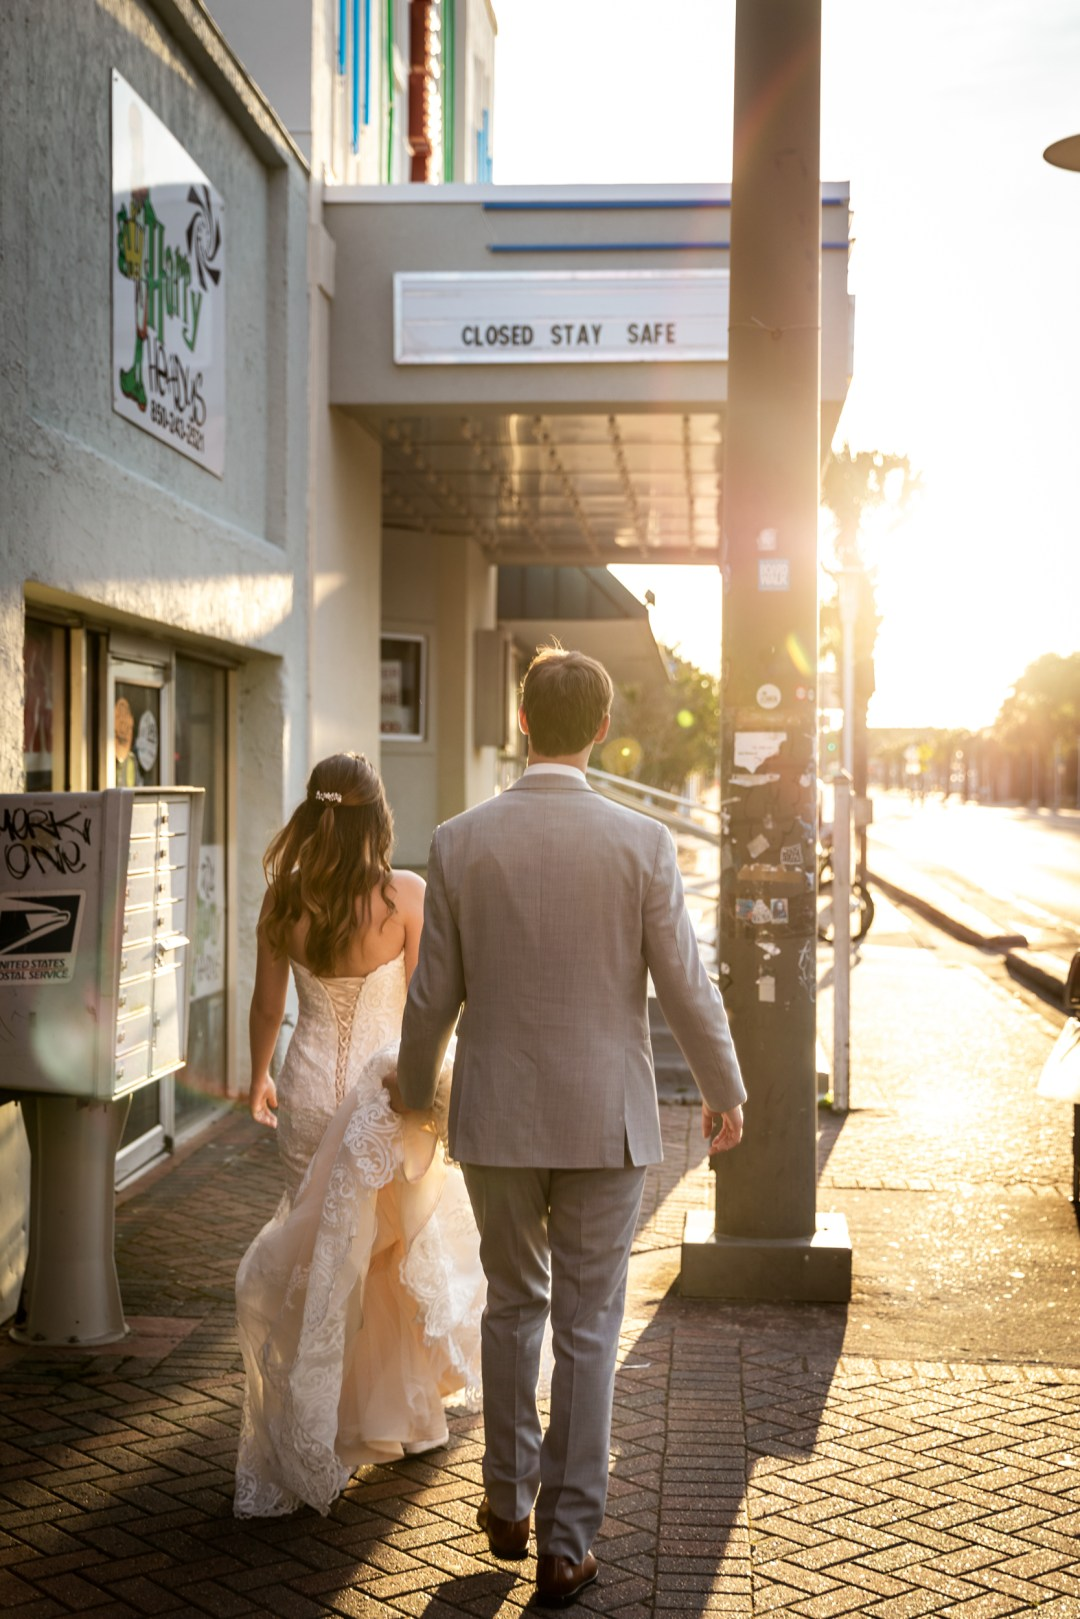 COVID-19 wedding video shot of bride and groom walking by closed theater in downtown Fort Walton Beach